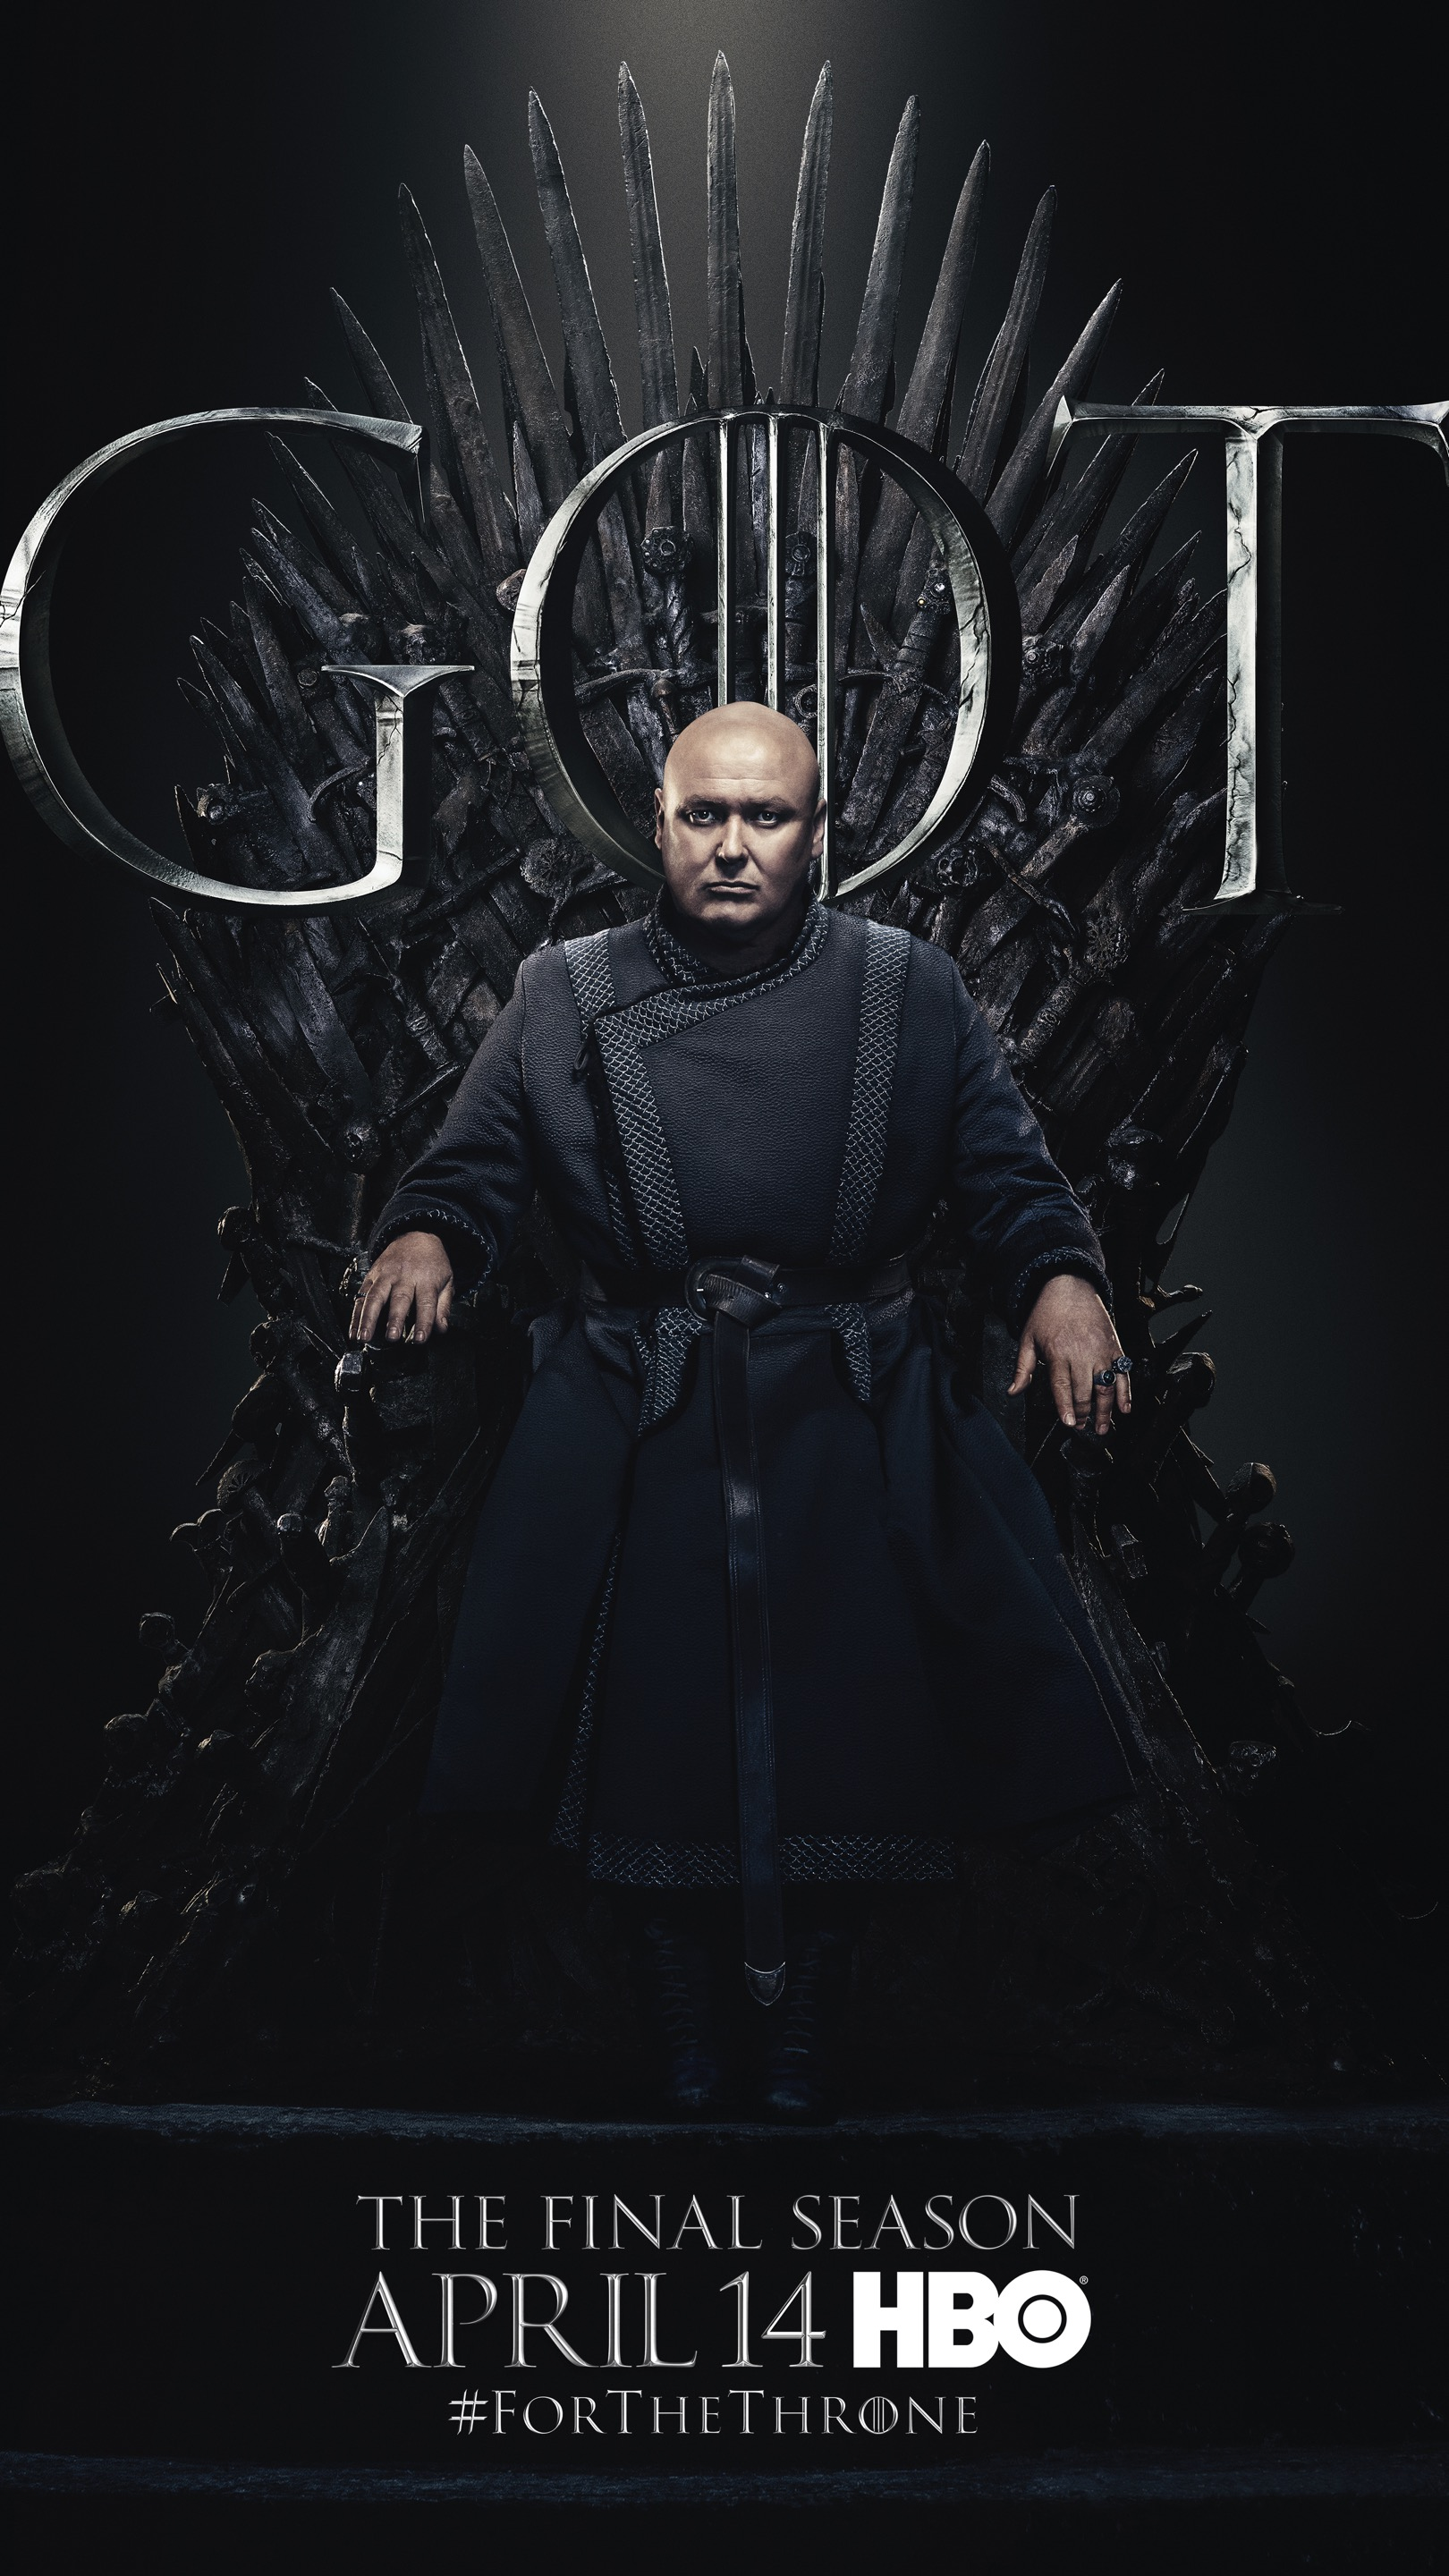 GT8_KEY_FB_9x16_LORD_VARYS_resized